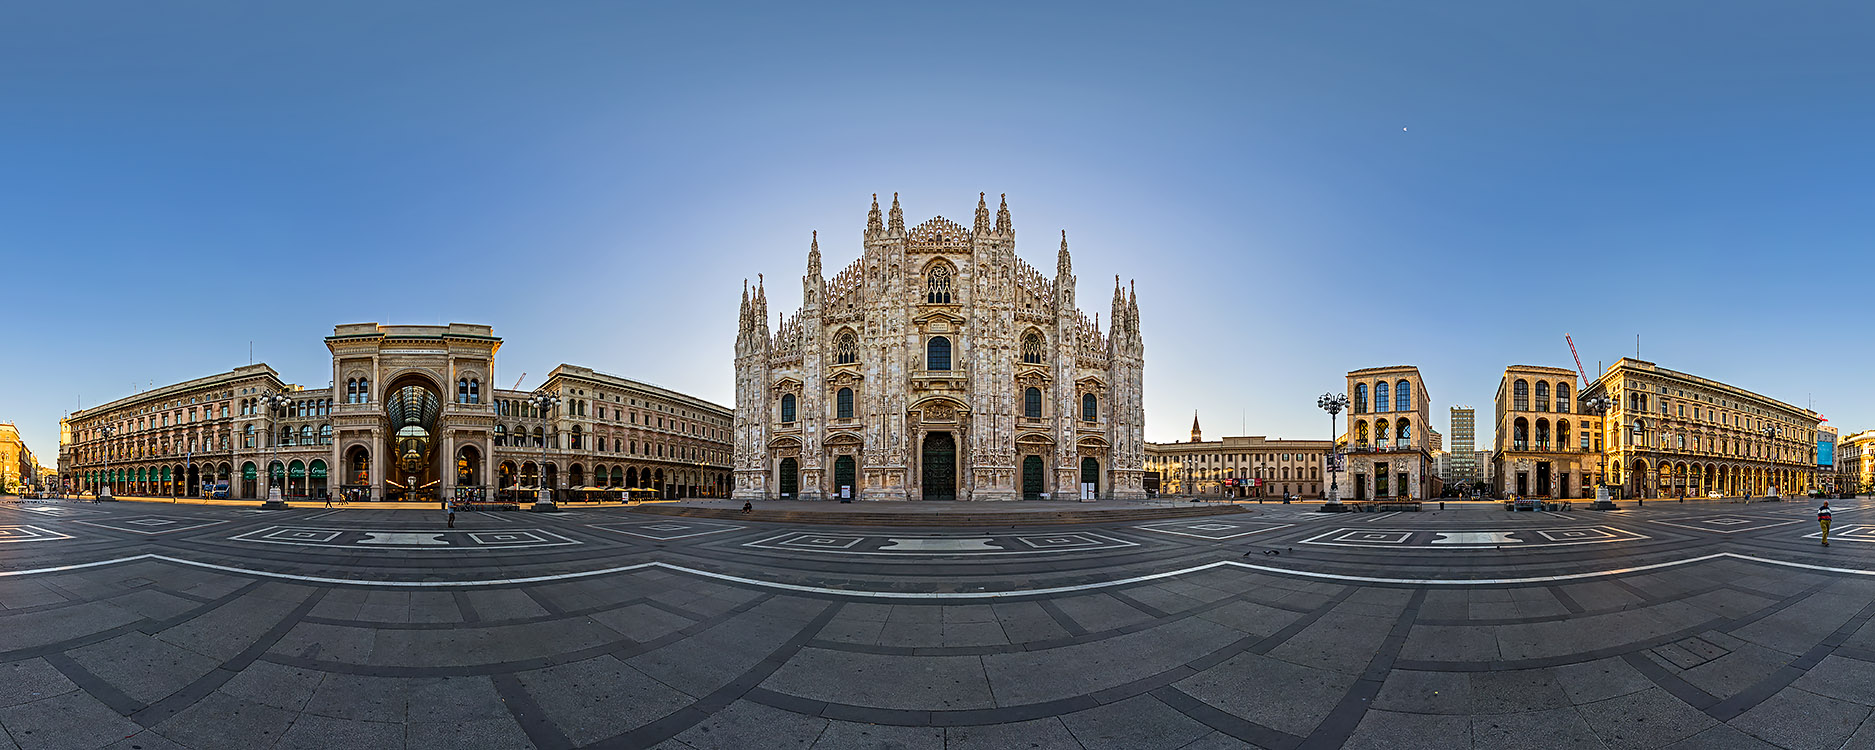 The very center of Milan at dawn: the Duomo Square